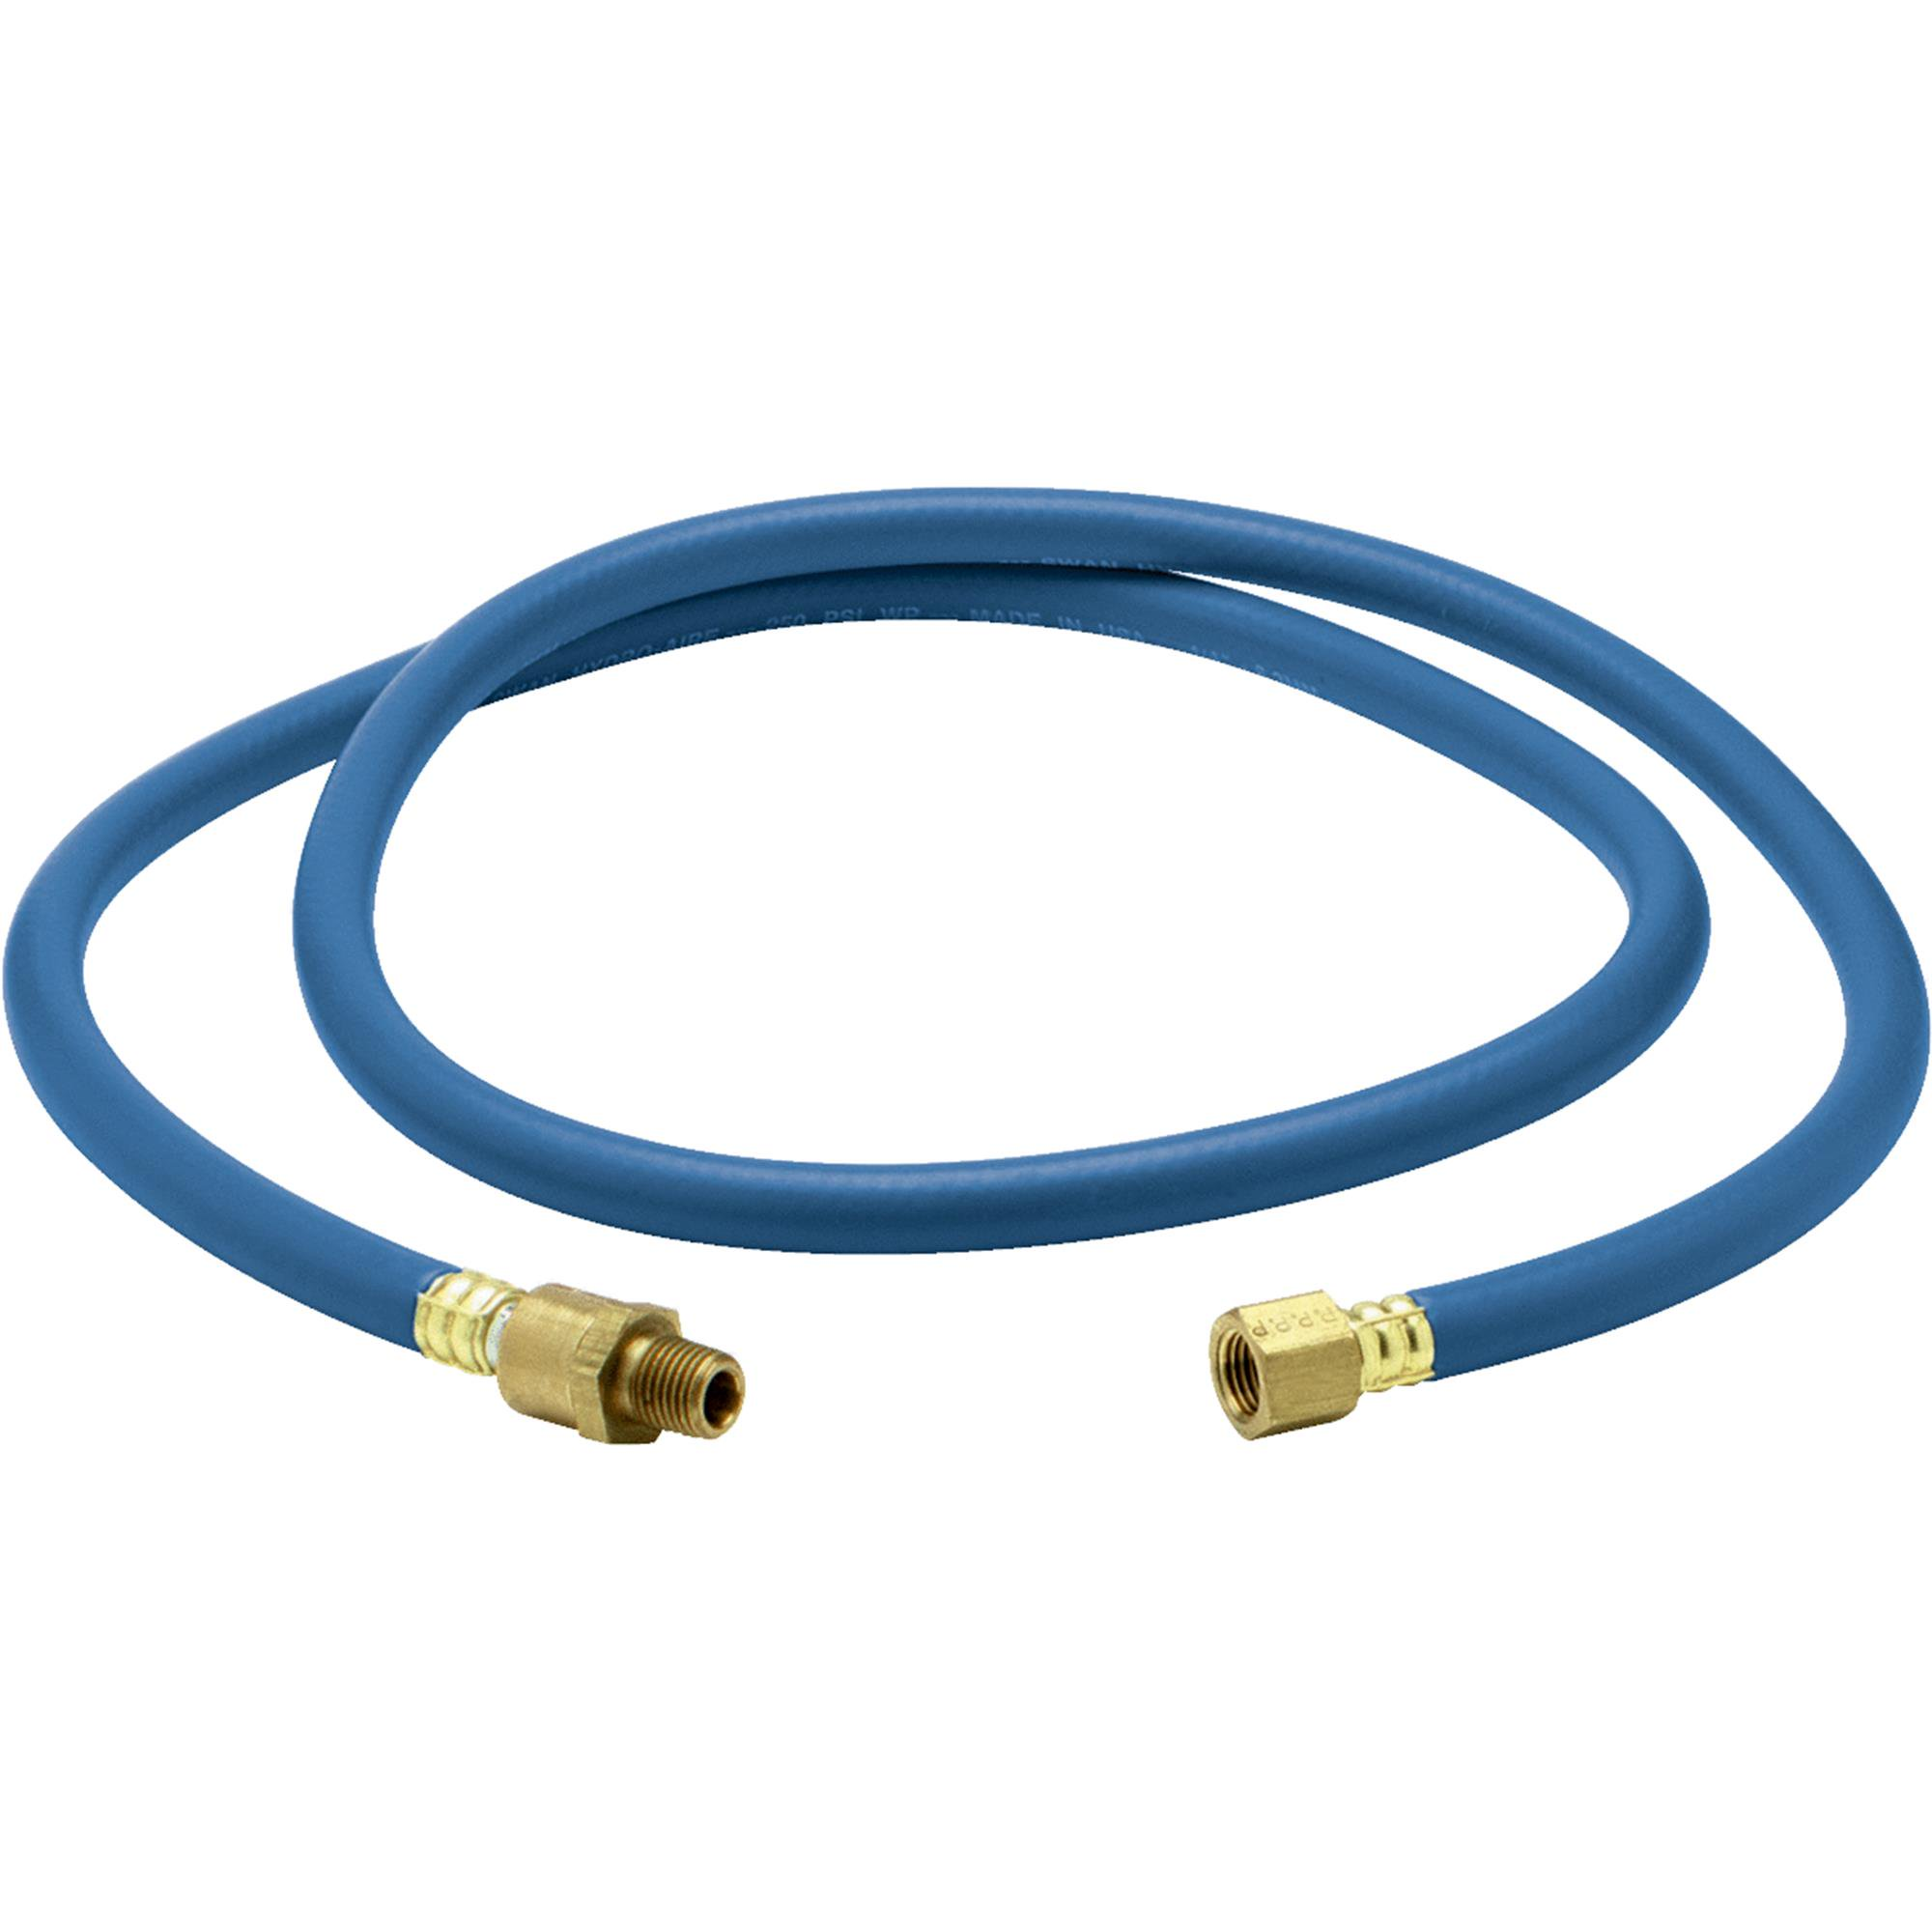 Amflo Swivel End Air Hose